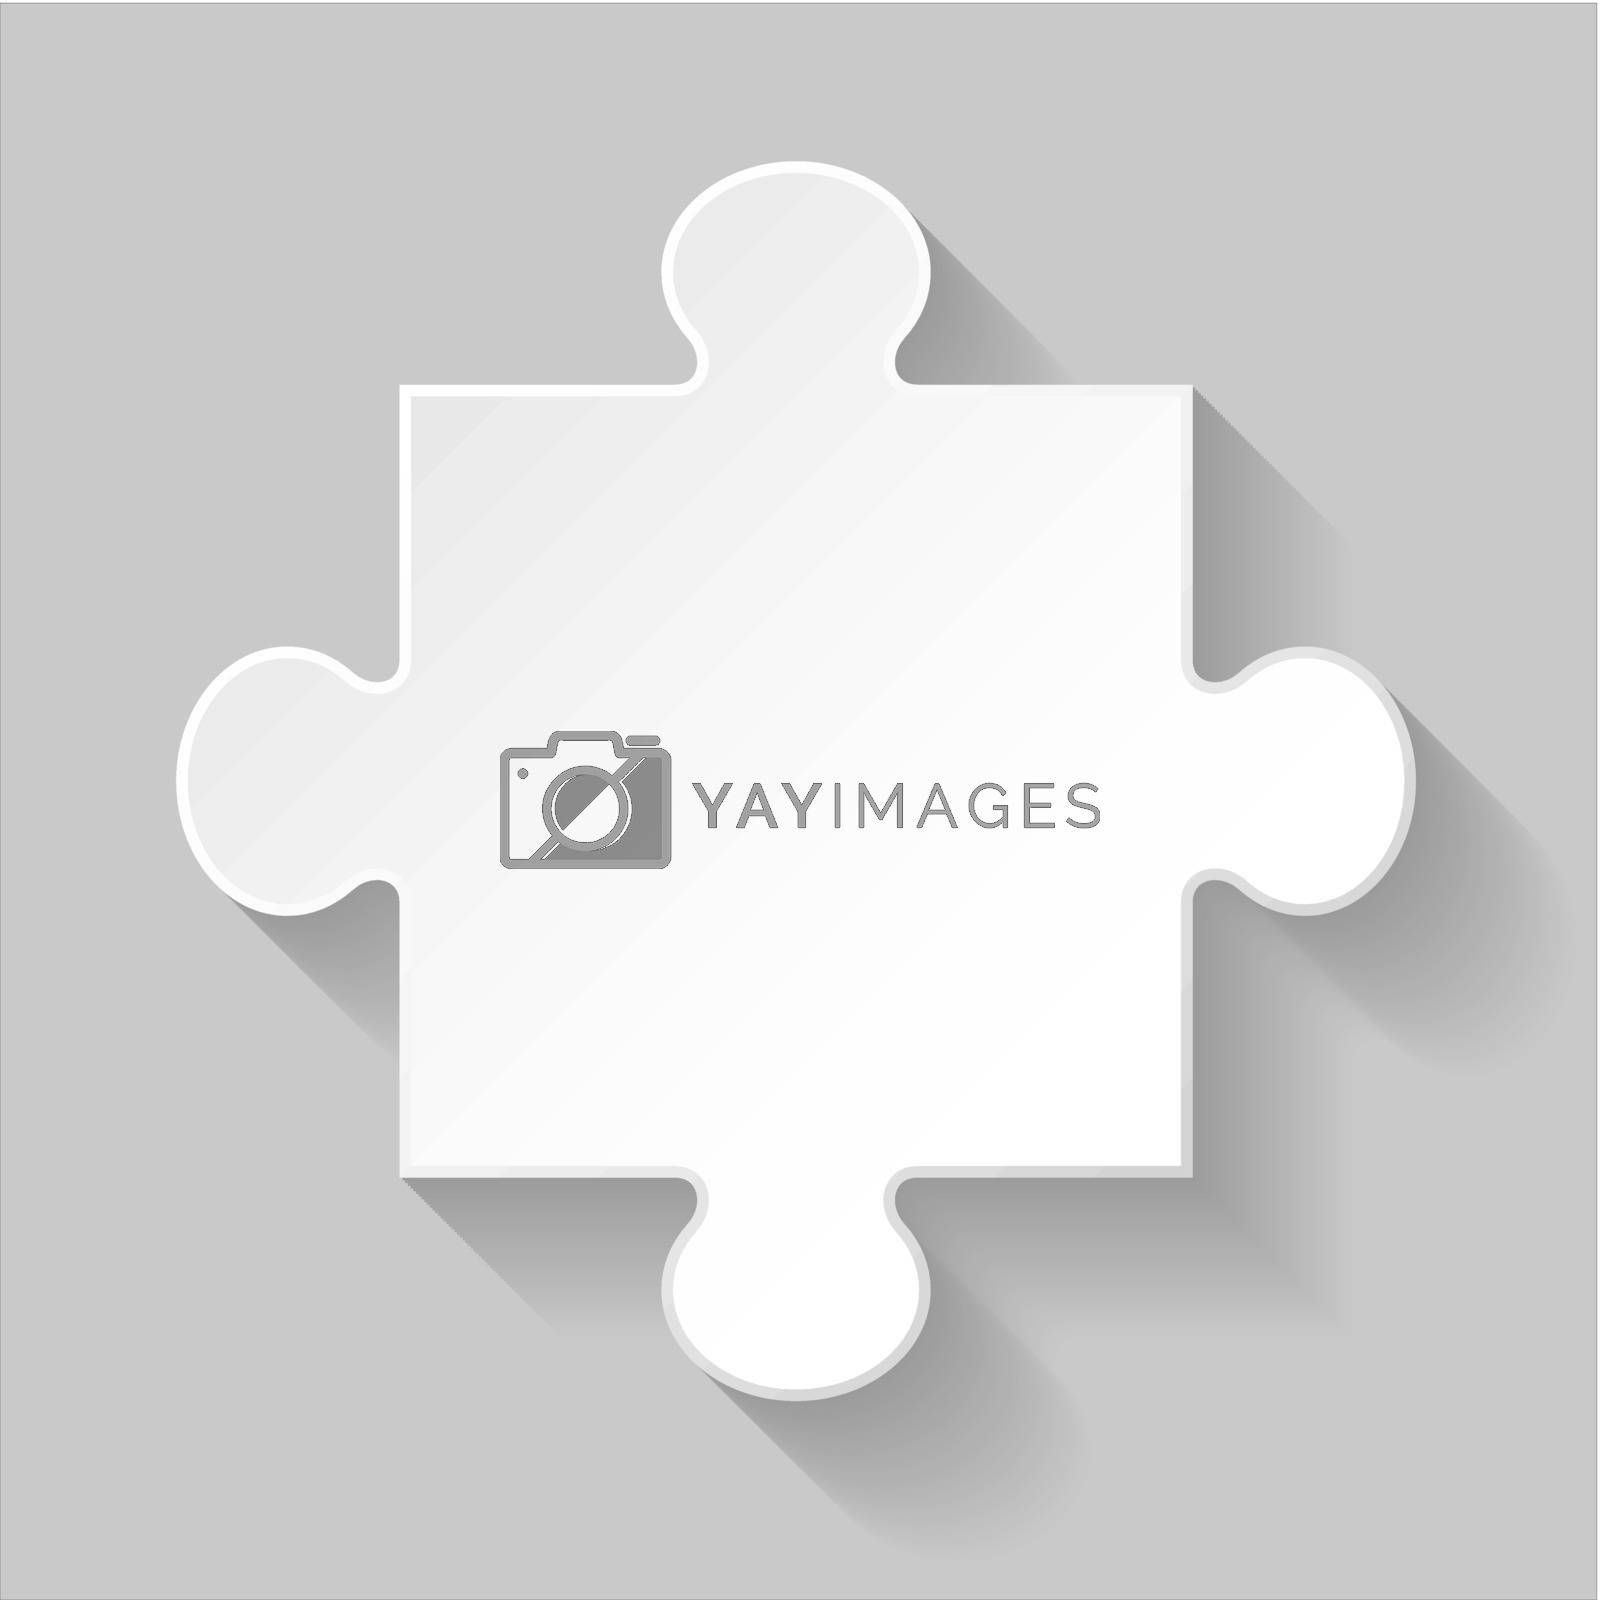 Royalty free image of Puzzle piece by dvarg